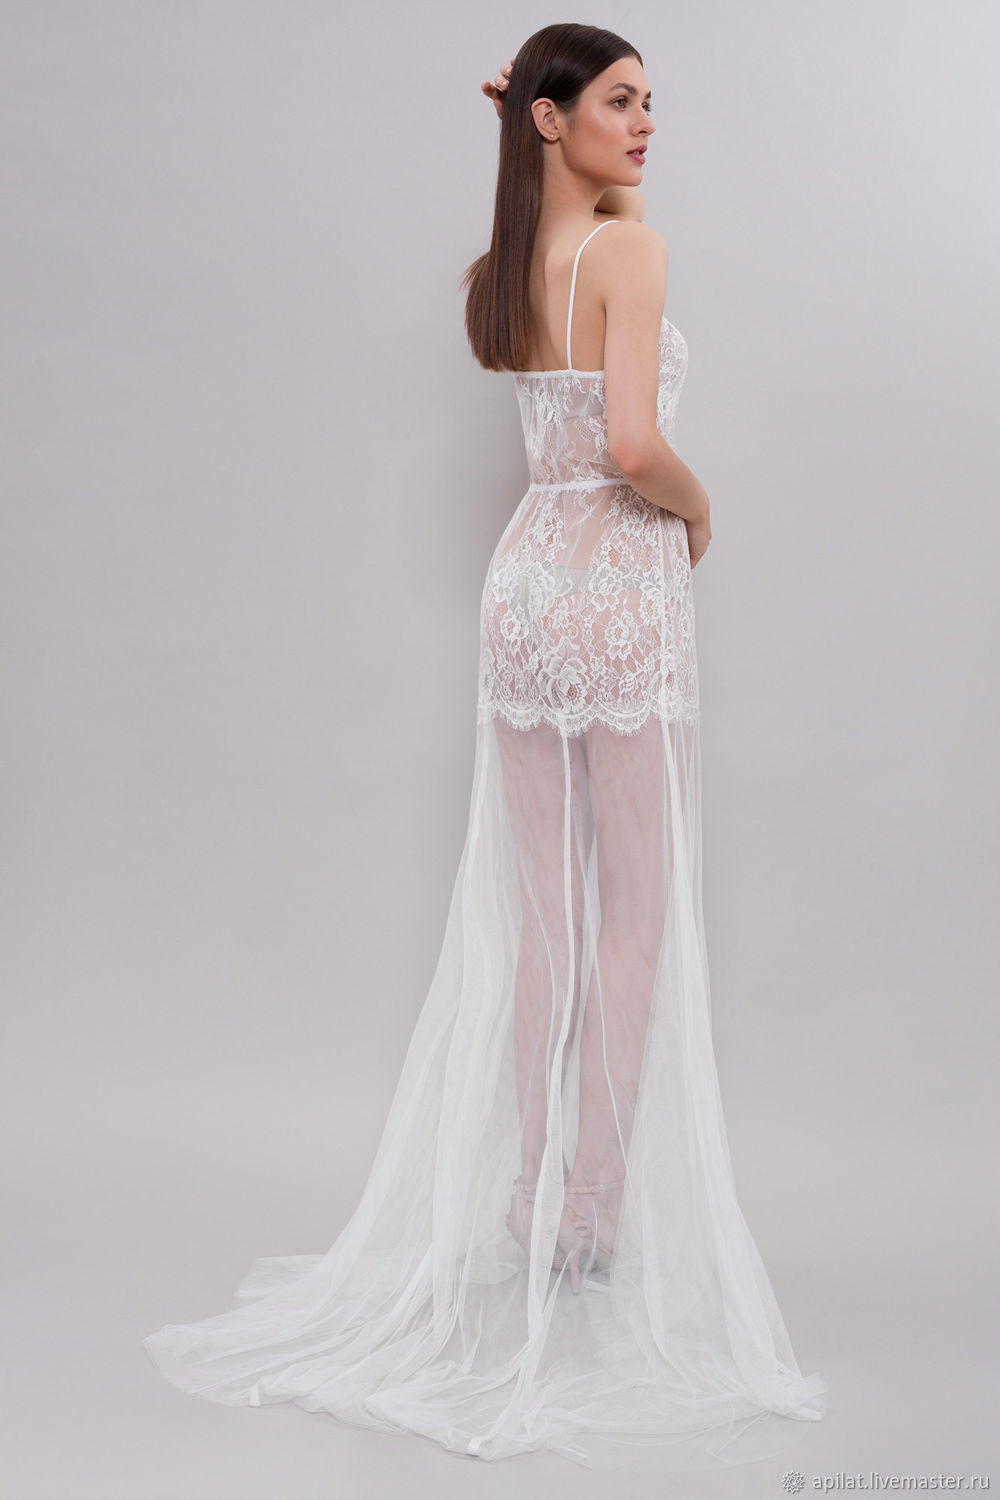 667c5db3e61 Long Tulle Bridal Nightgown With Lace F31(Lingerie)